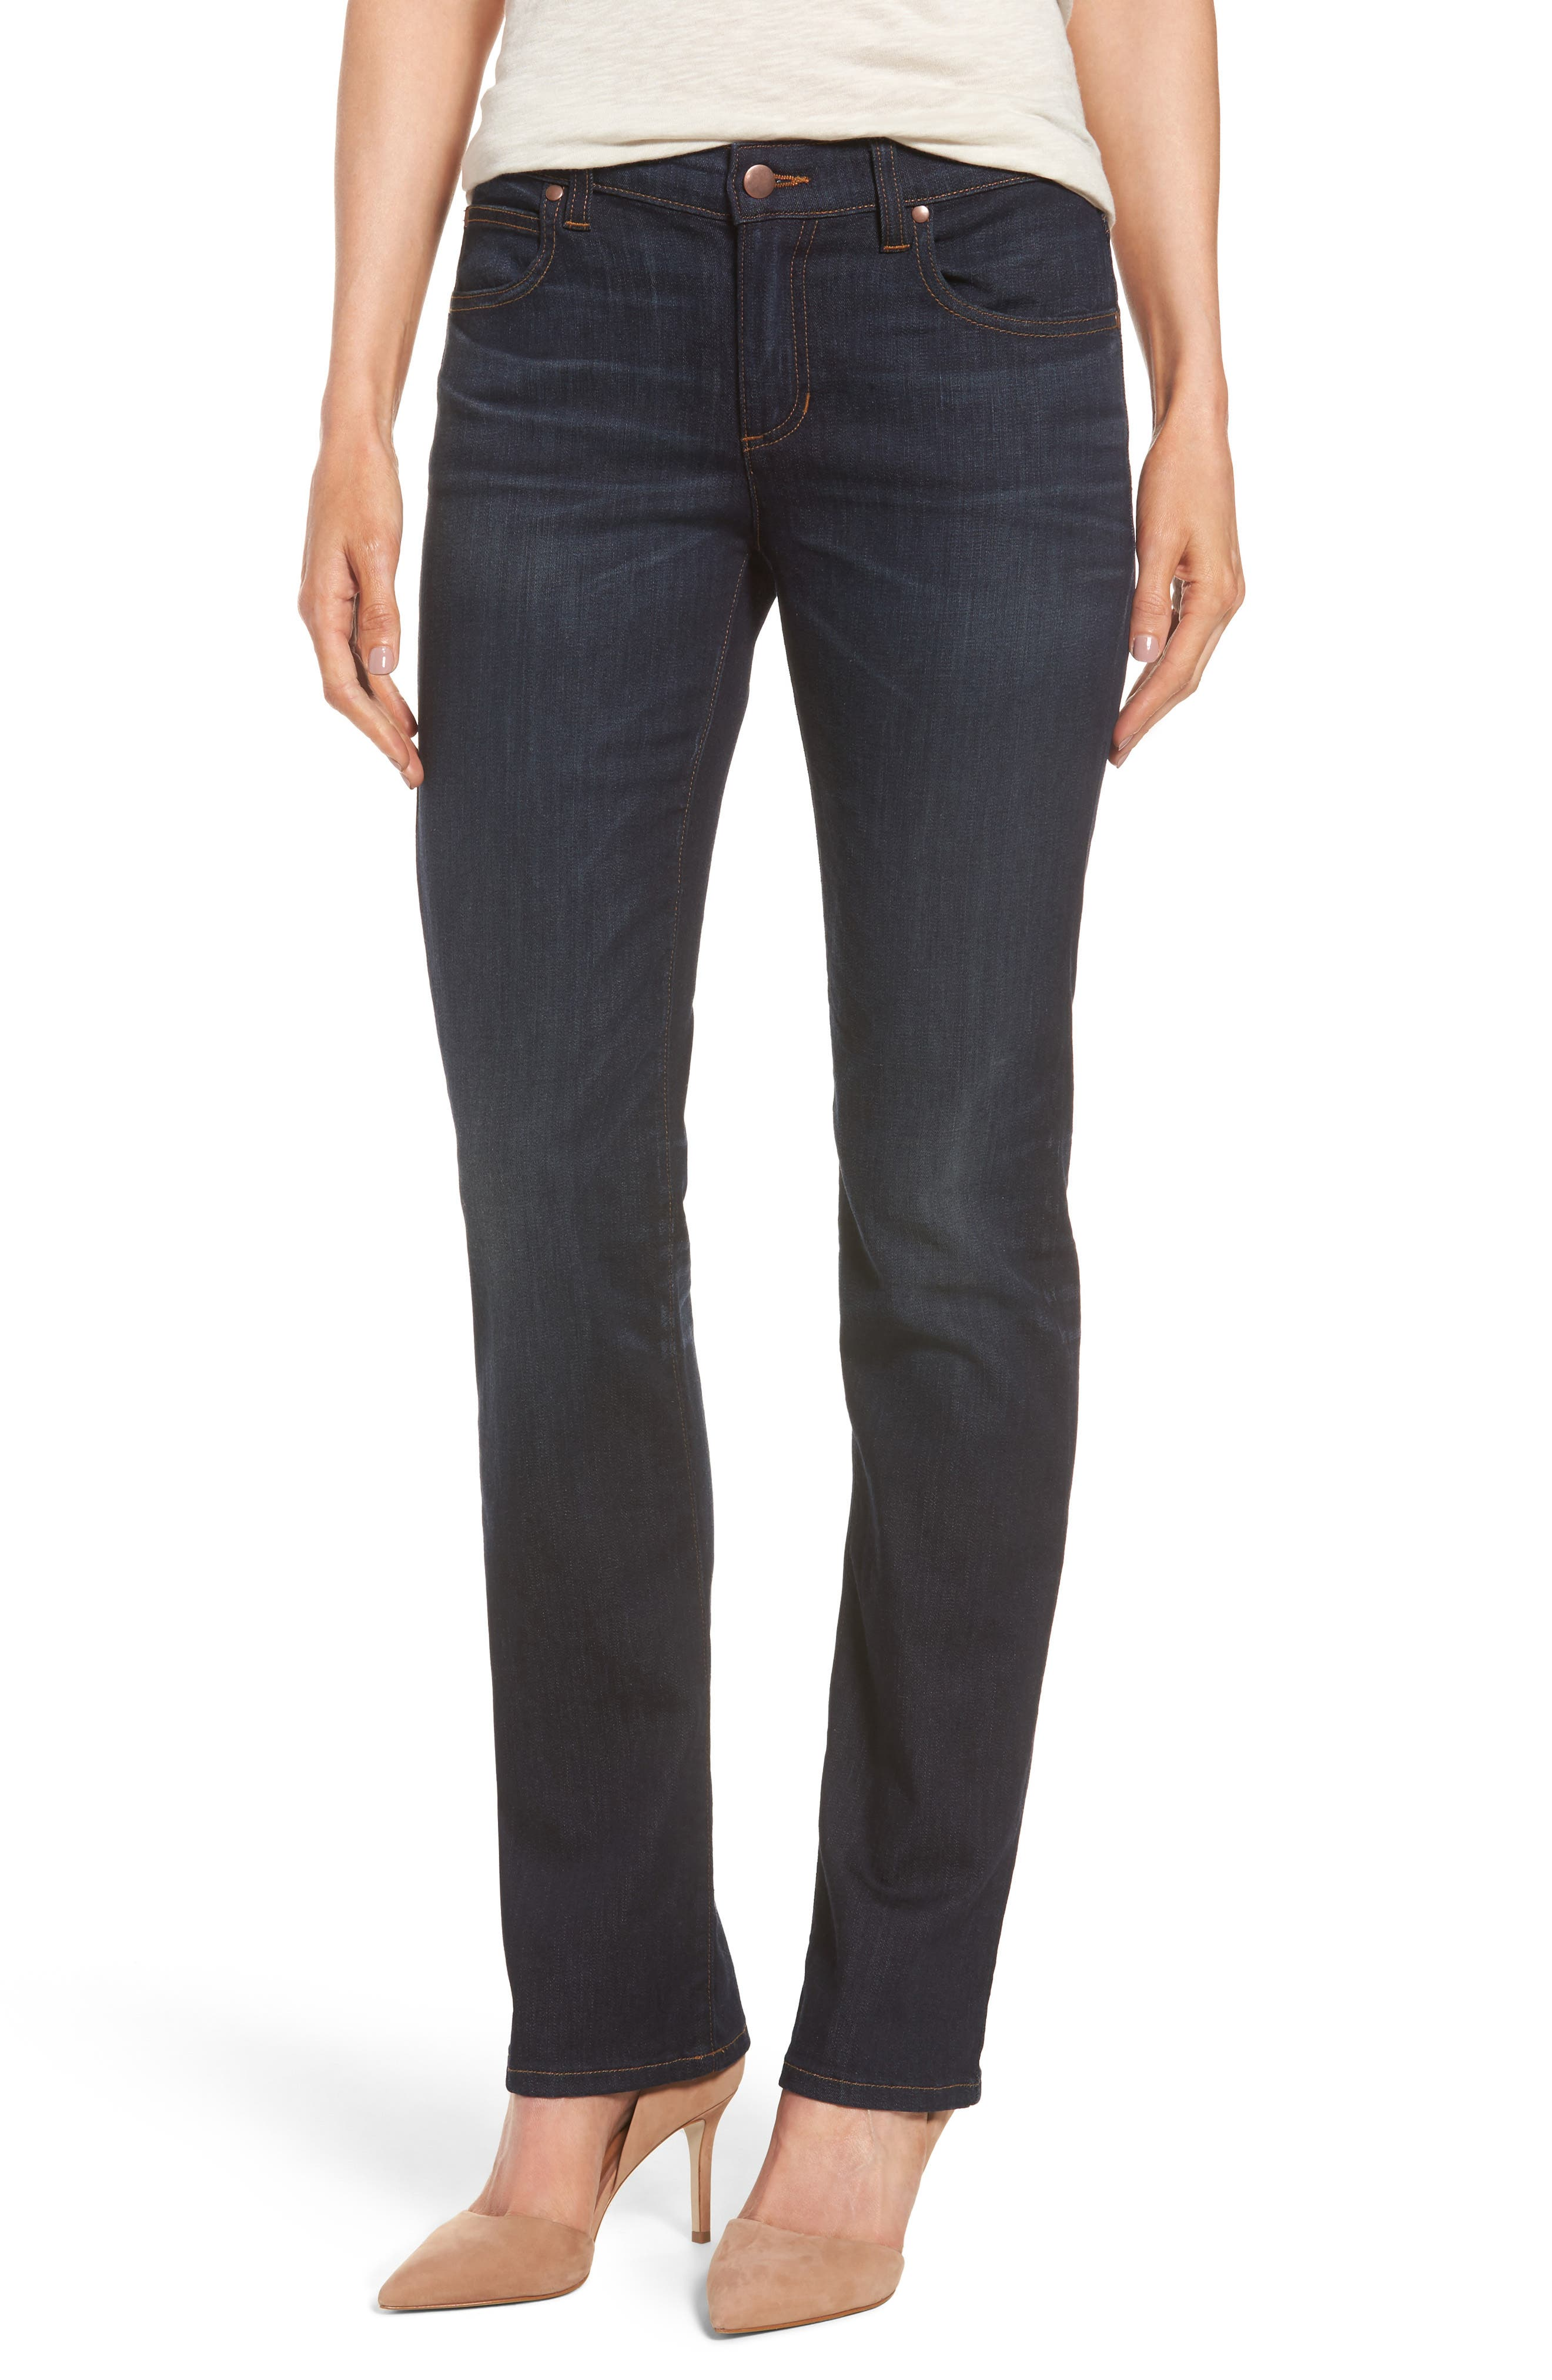 Alternate Image 1 Selected - Eileen Fisher Straight Leg Stretch Jeans (Regular & Petite)